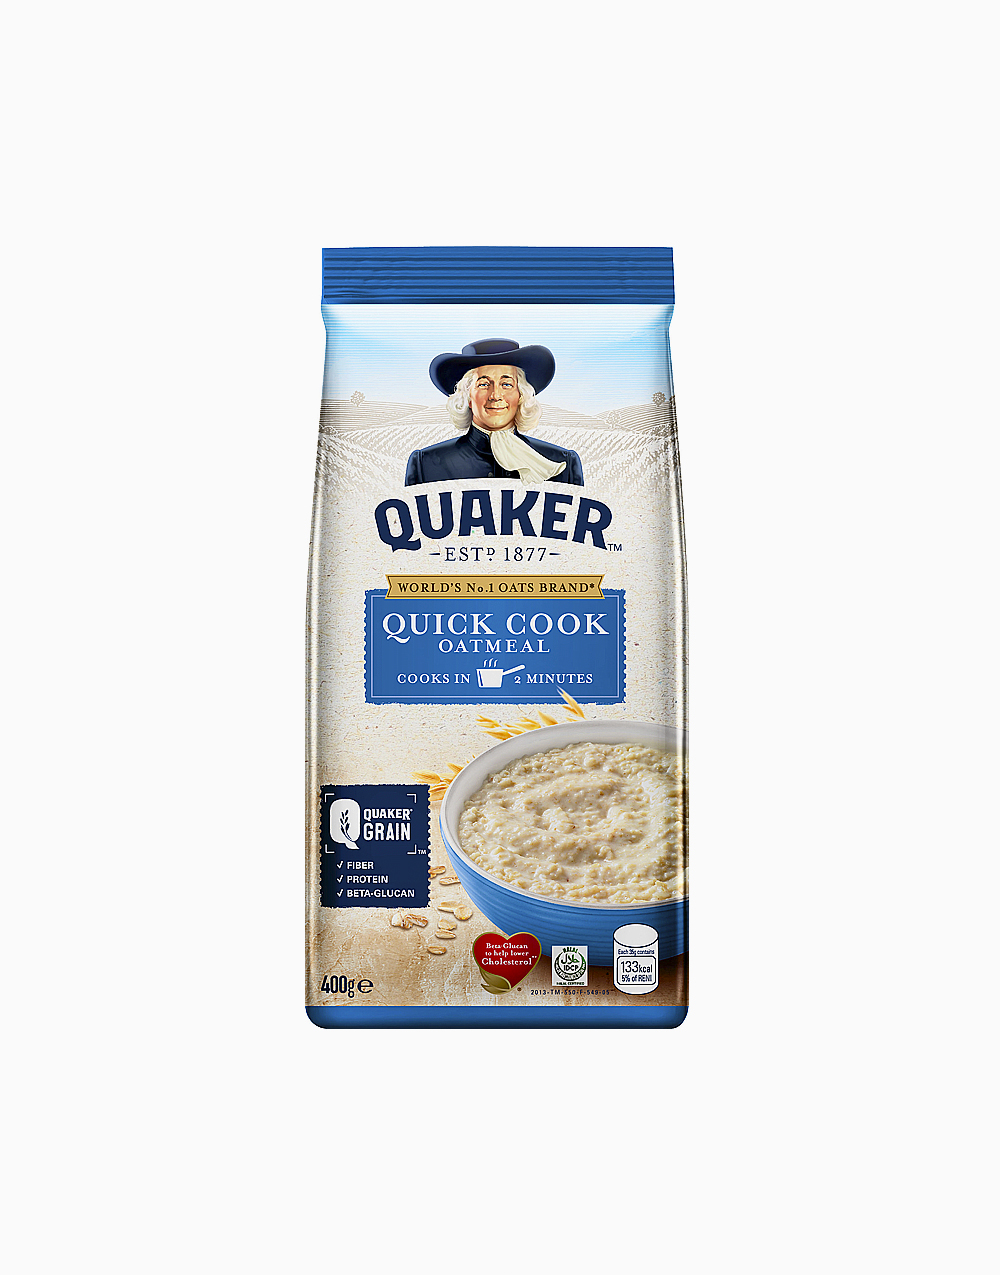 Quick Cooking Oatmeal (400g) by Quaker